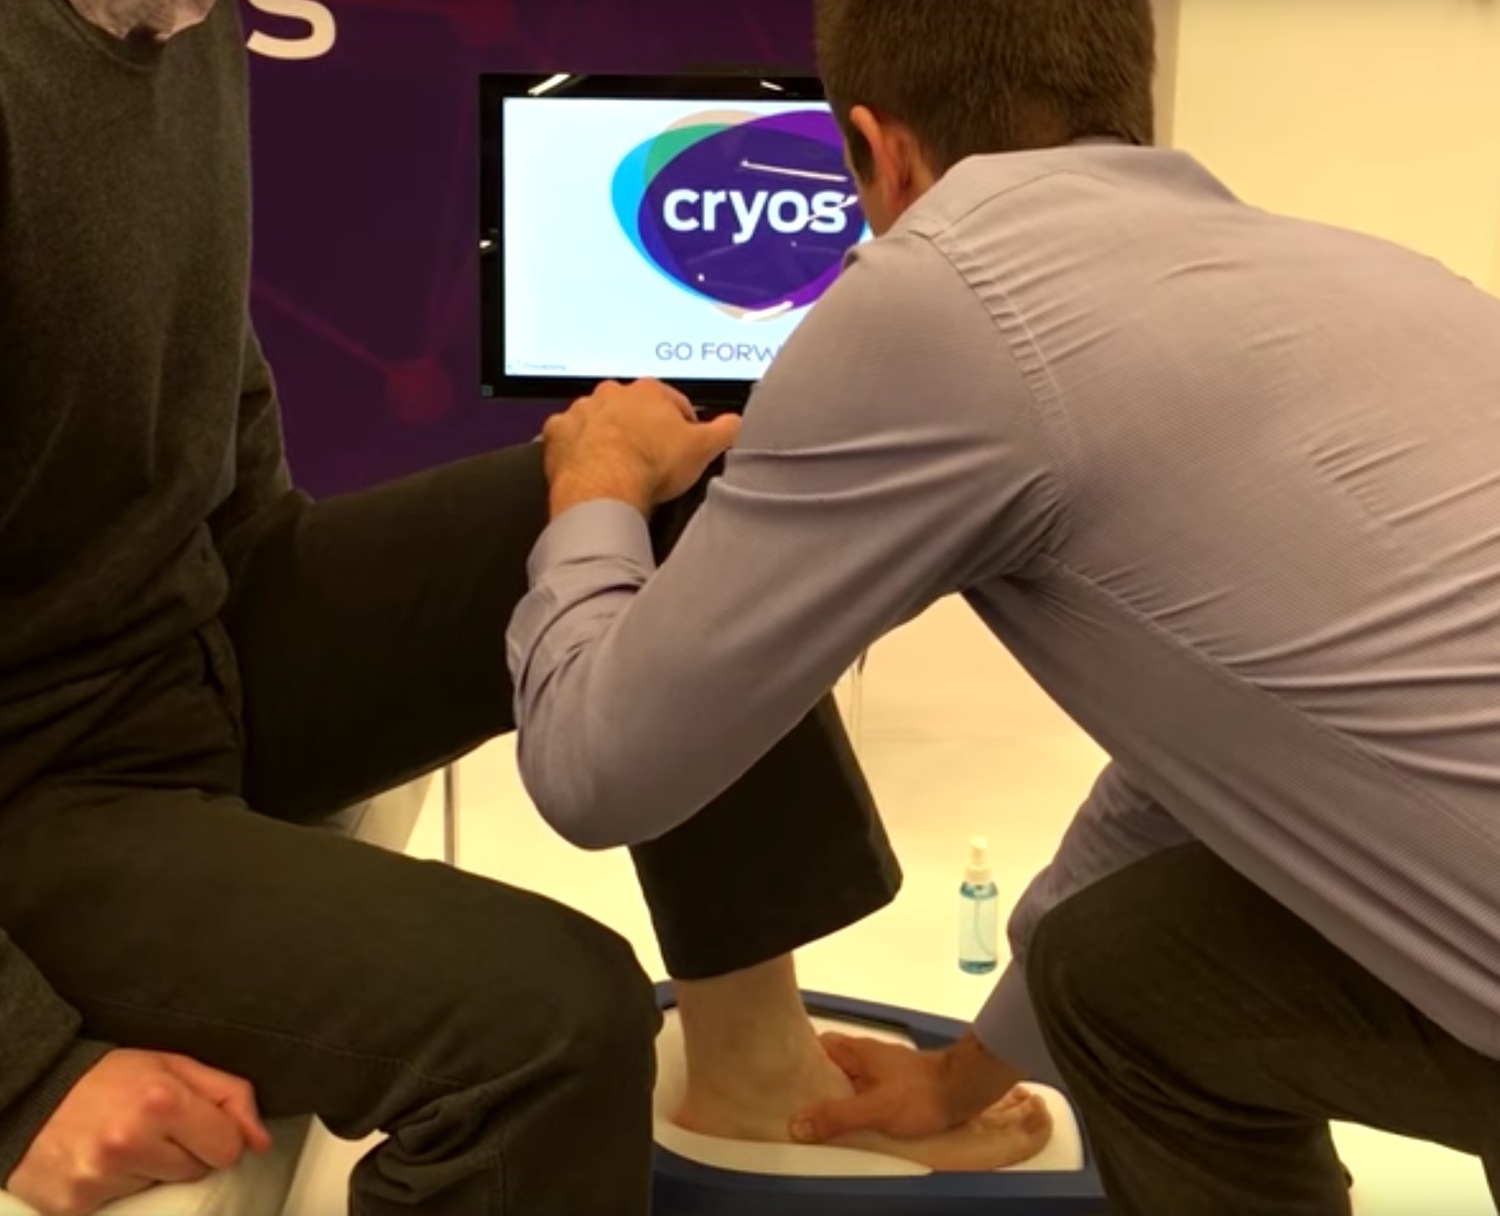 Cryoscan3D in action [Image: Fuel3D]